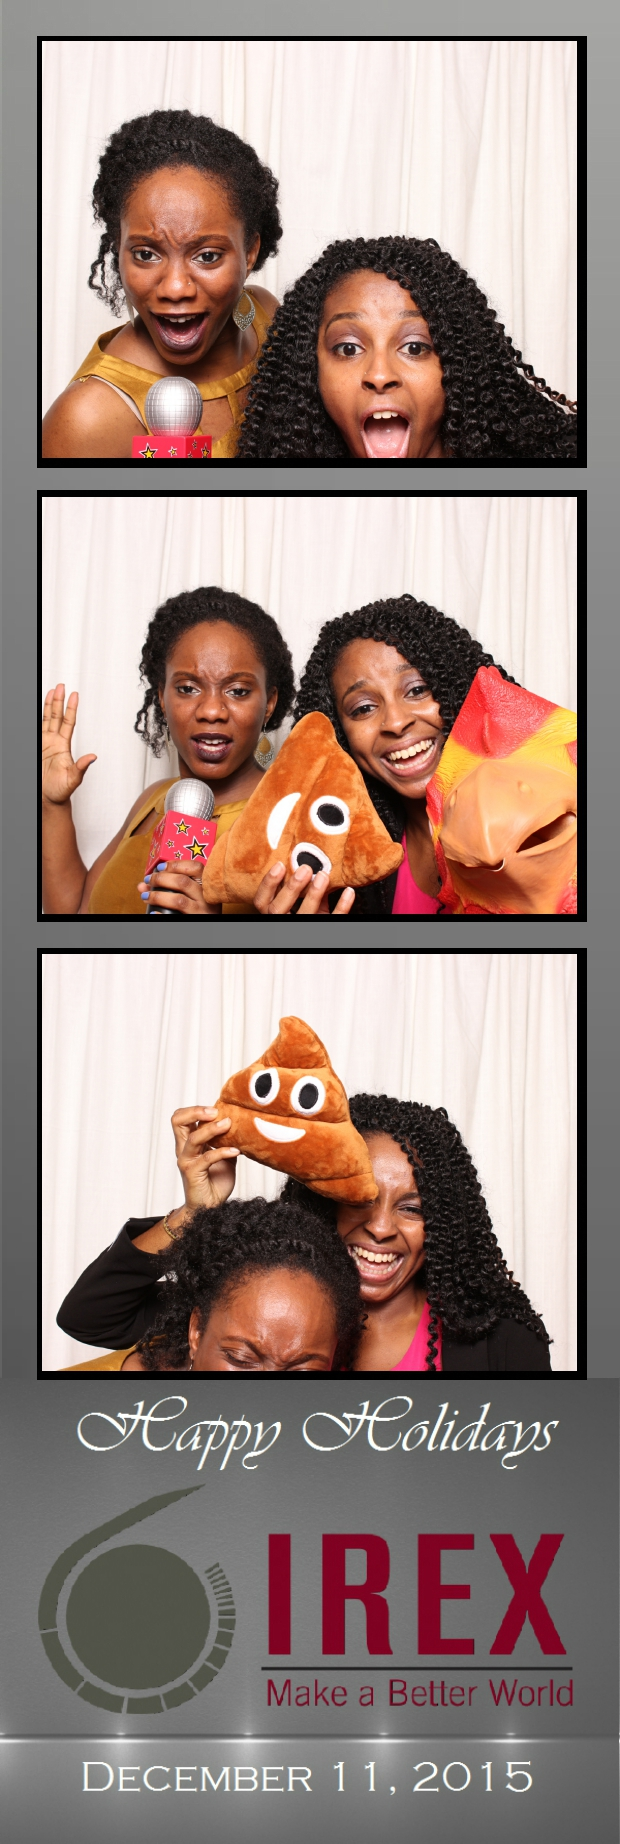 Guest House Events Photo Booth Strips IREX (97).jpg